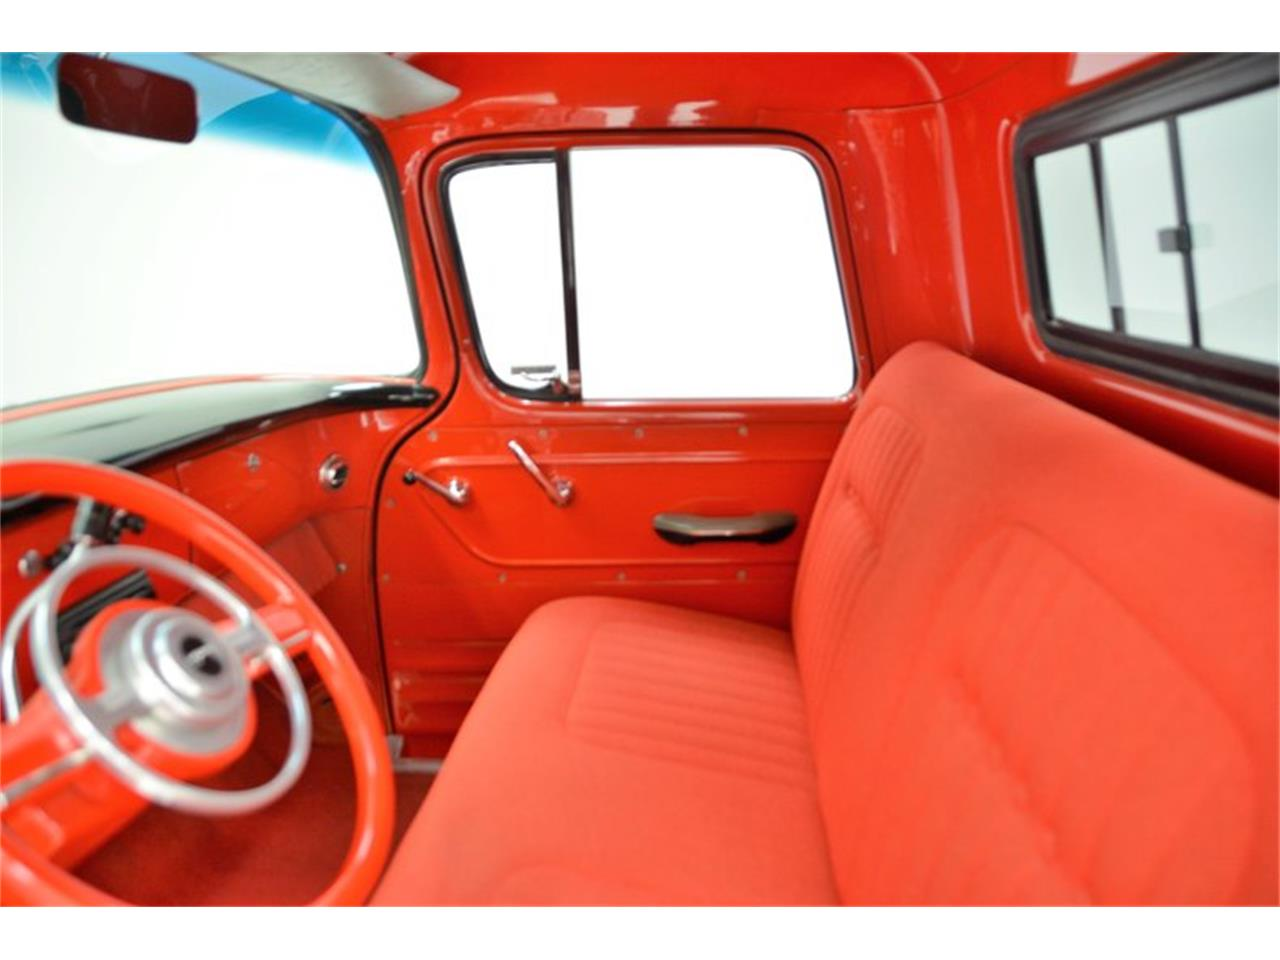 1957 Chevrolet Pickup for sale in Morgantown, PA – photo 31